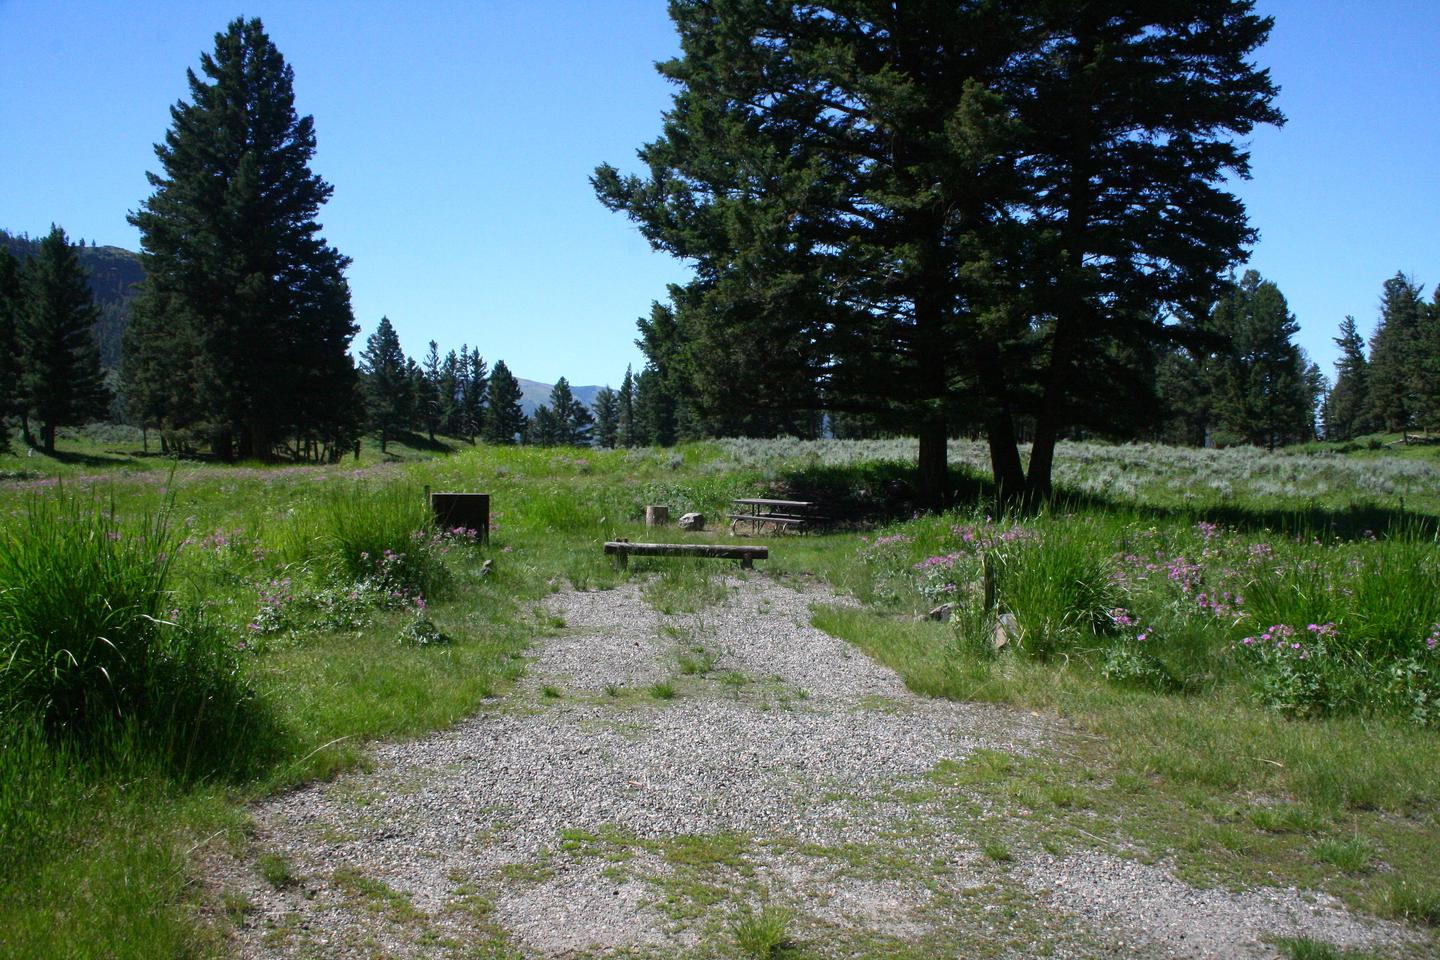 Slough Creek Campground site #8...Slough Creek Campground site #8